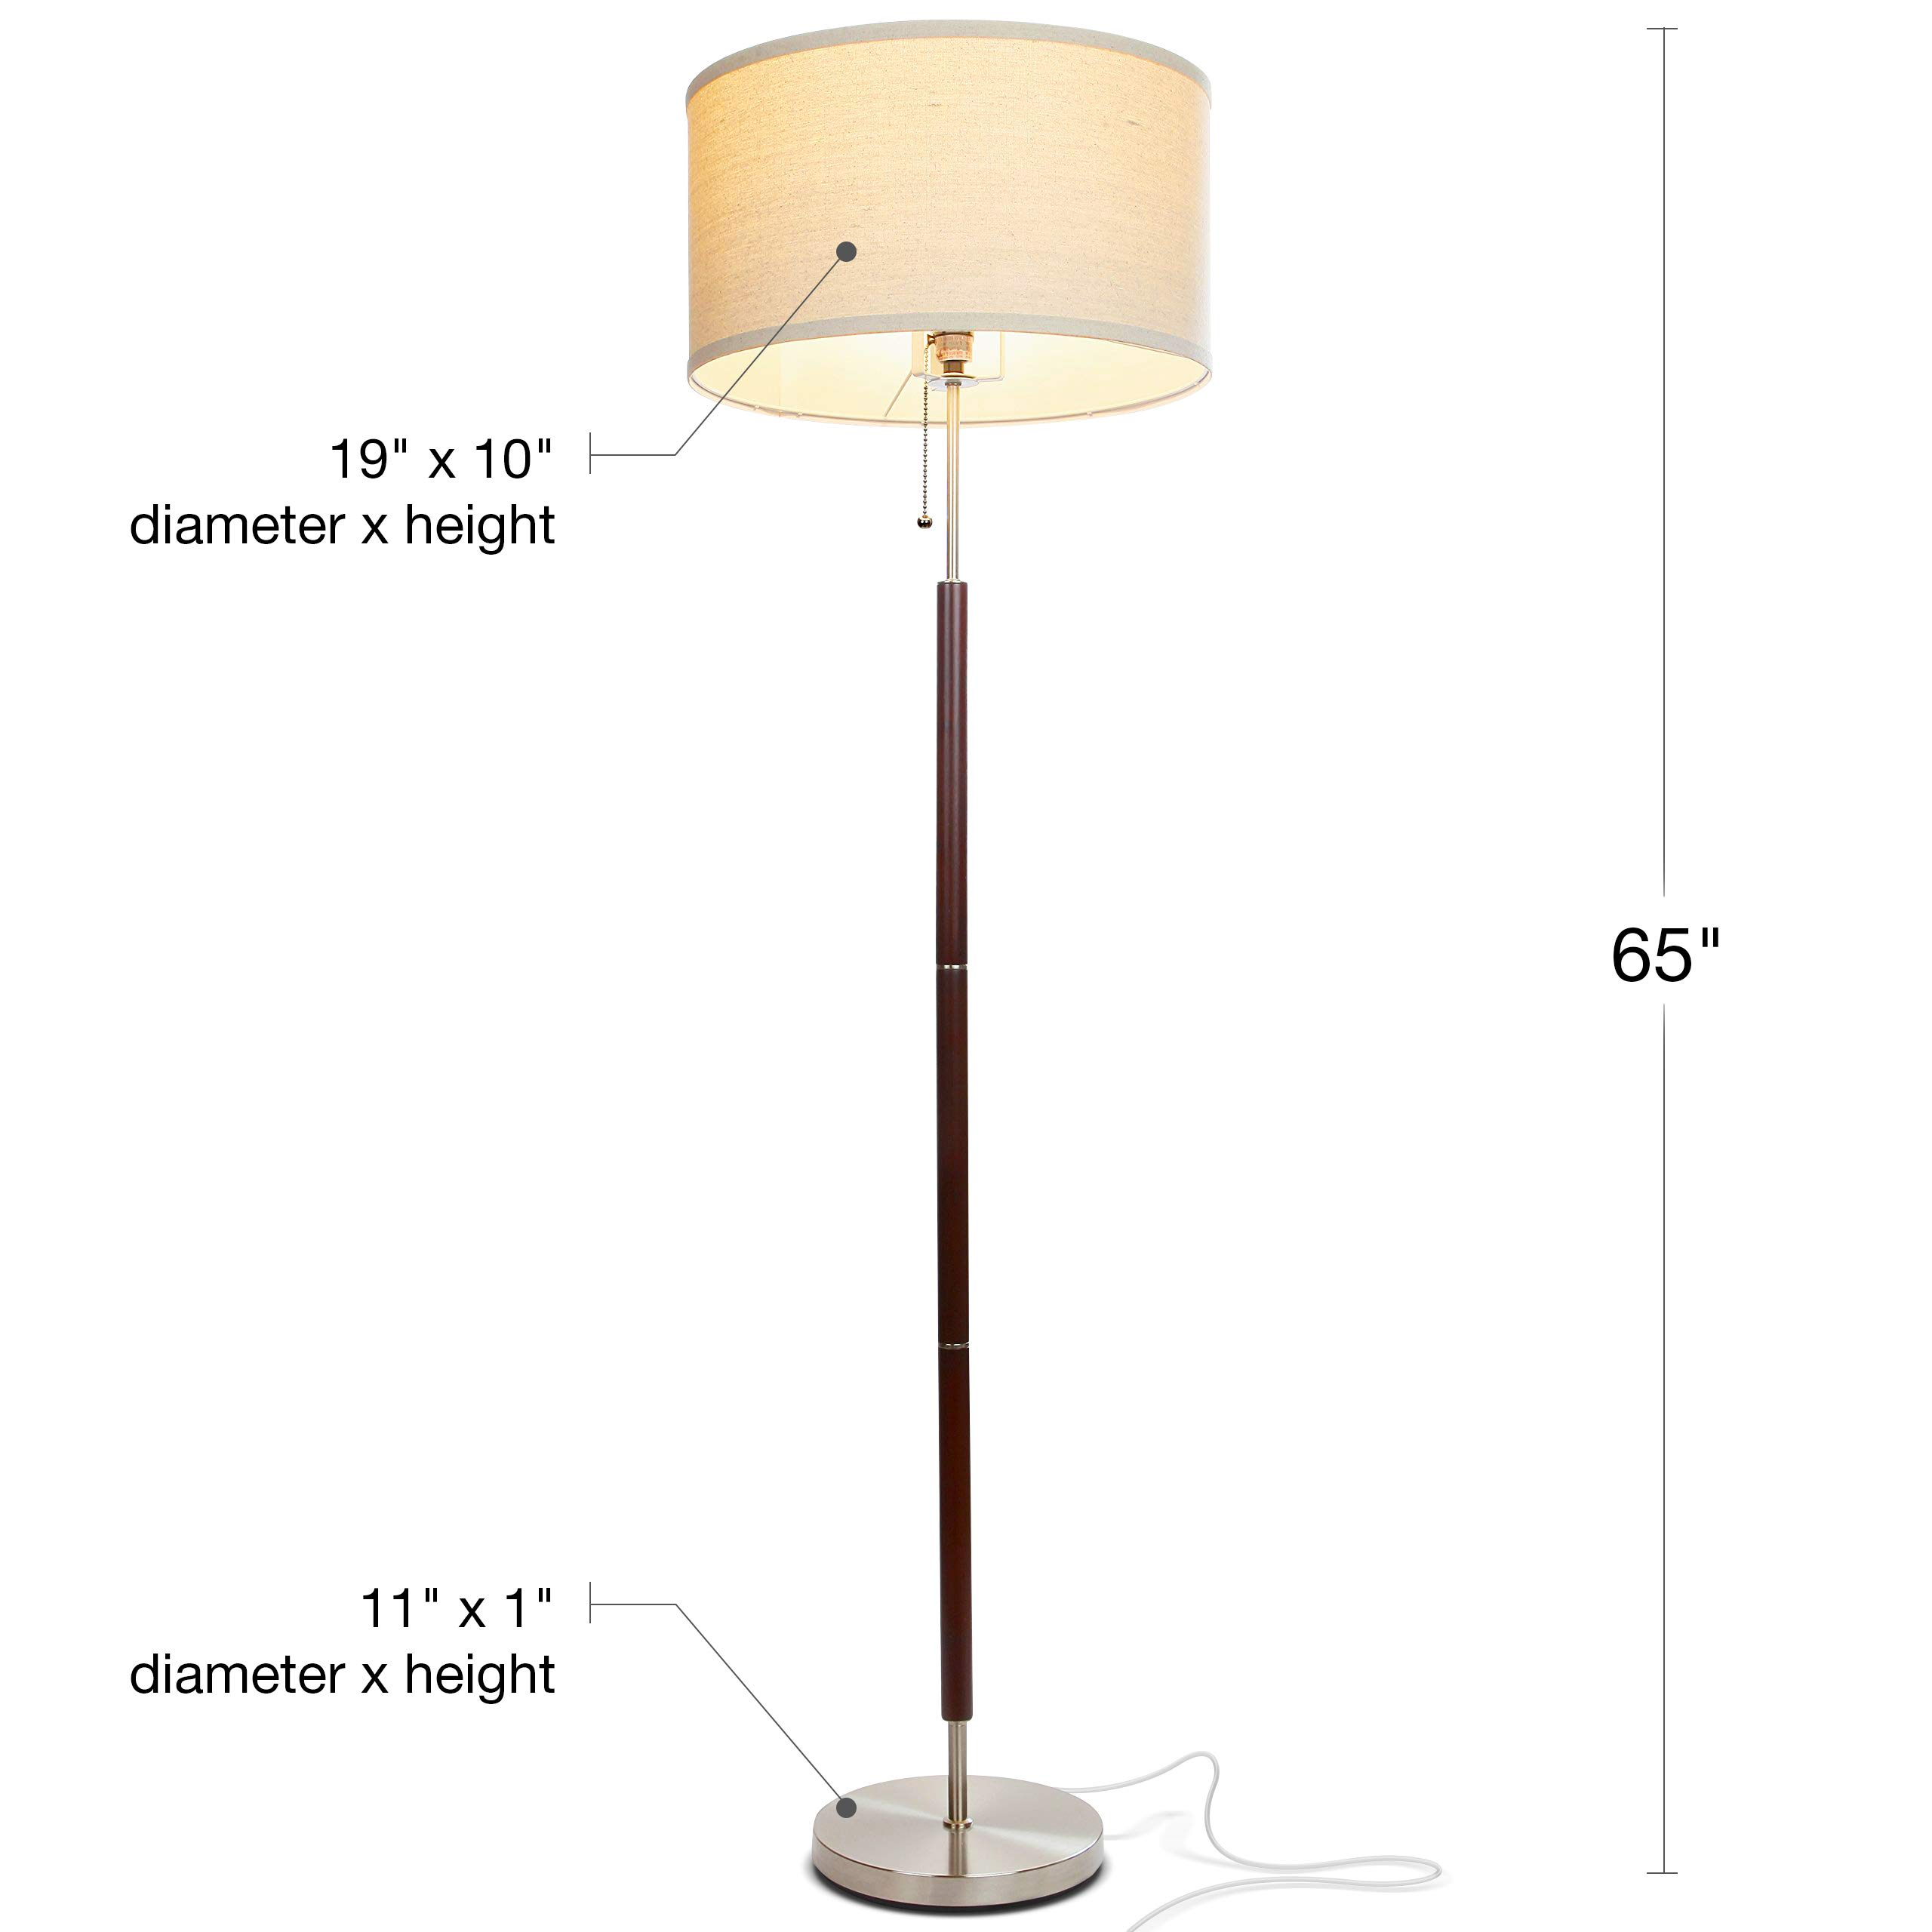 Brightech Carter LED Mid Century Modern Floor Lamp - Contemporary Living Room Standing Light - Tall Pole, Drum Shade Lamp with Walnut Wood Finish by Brightech (Image #2)